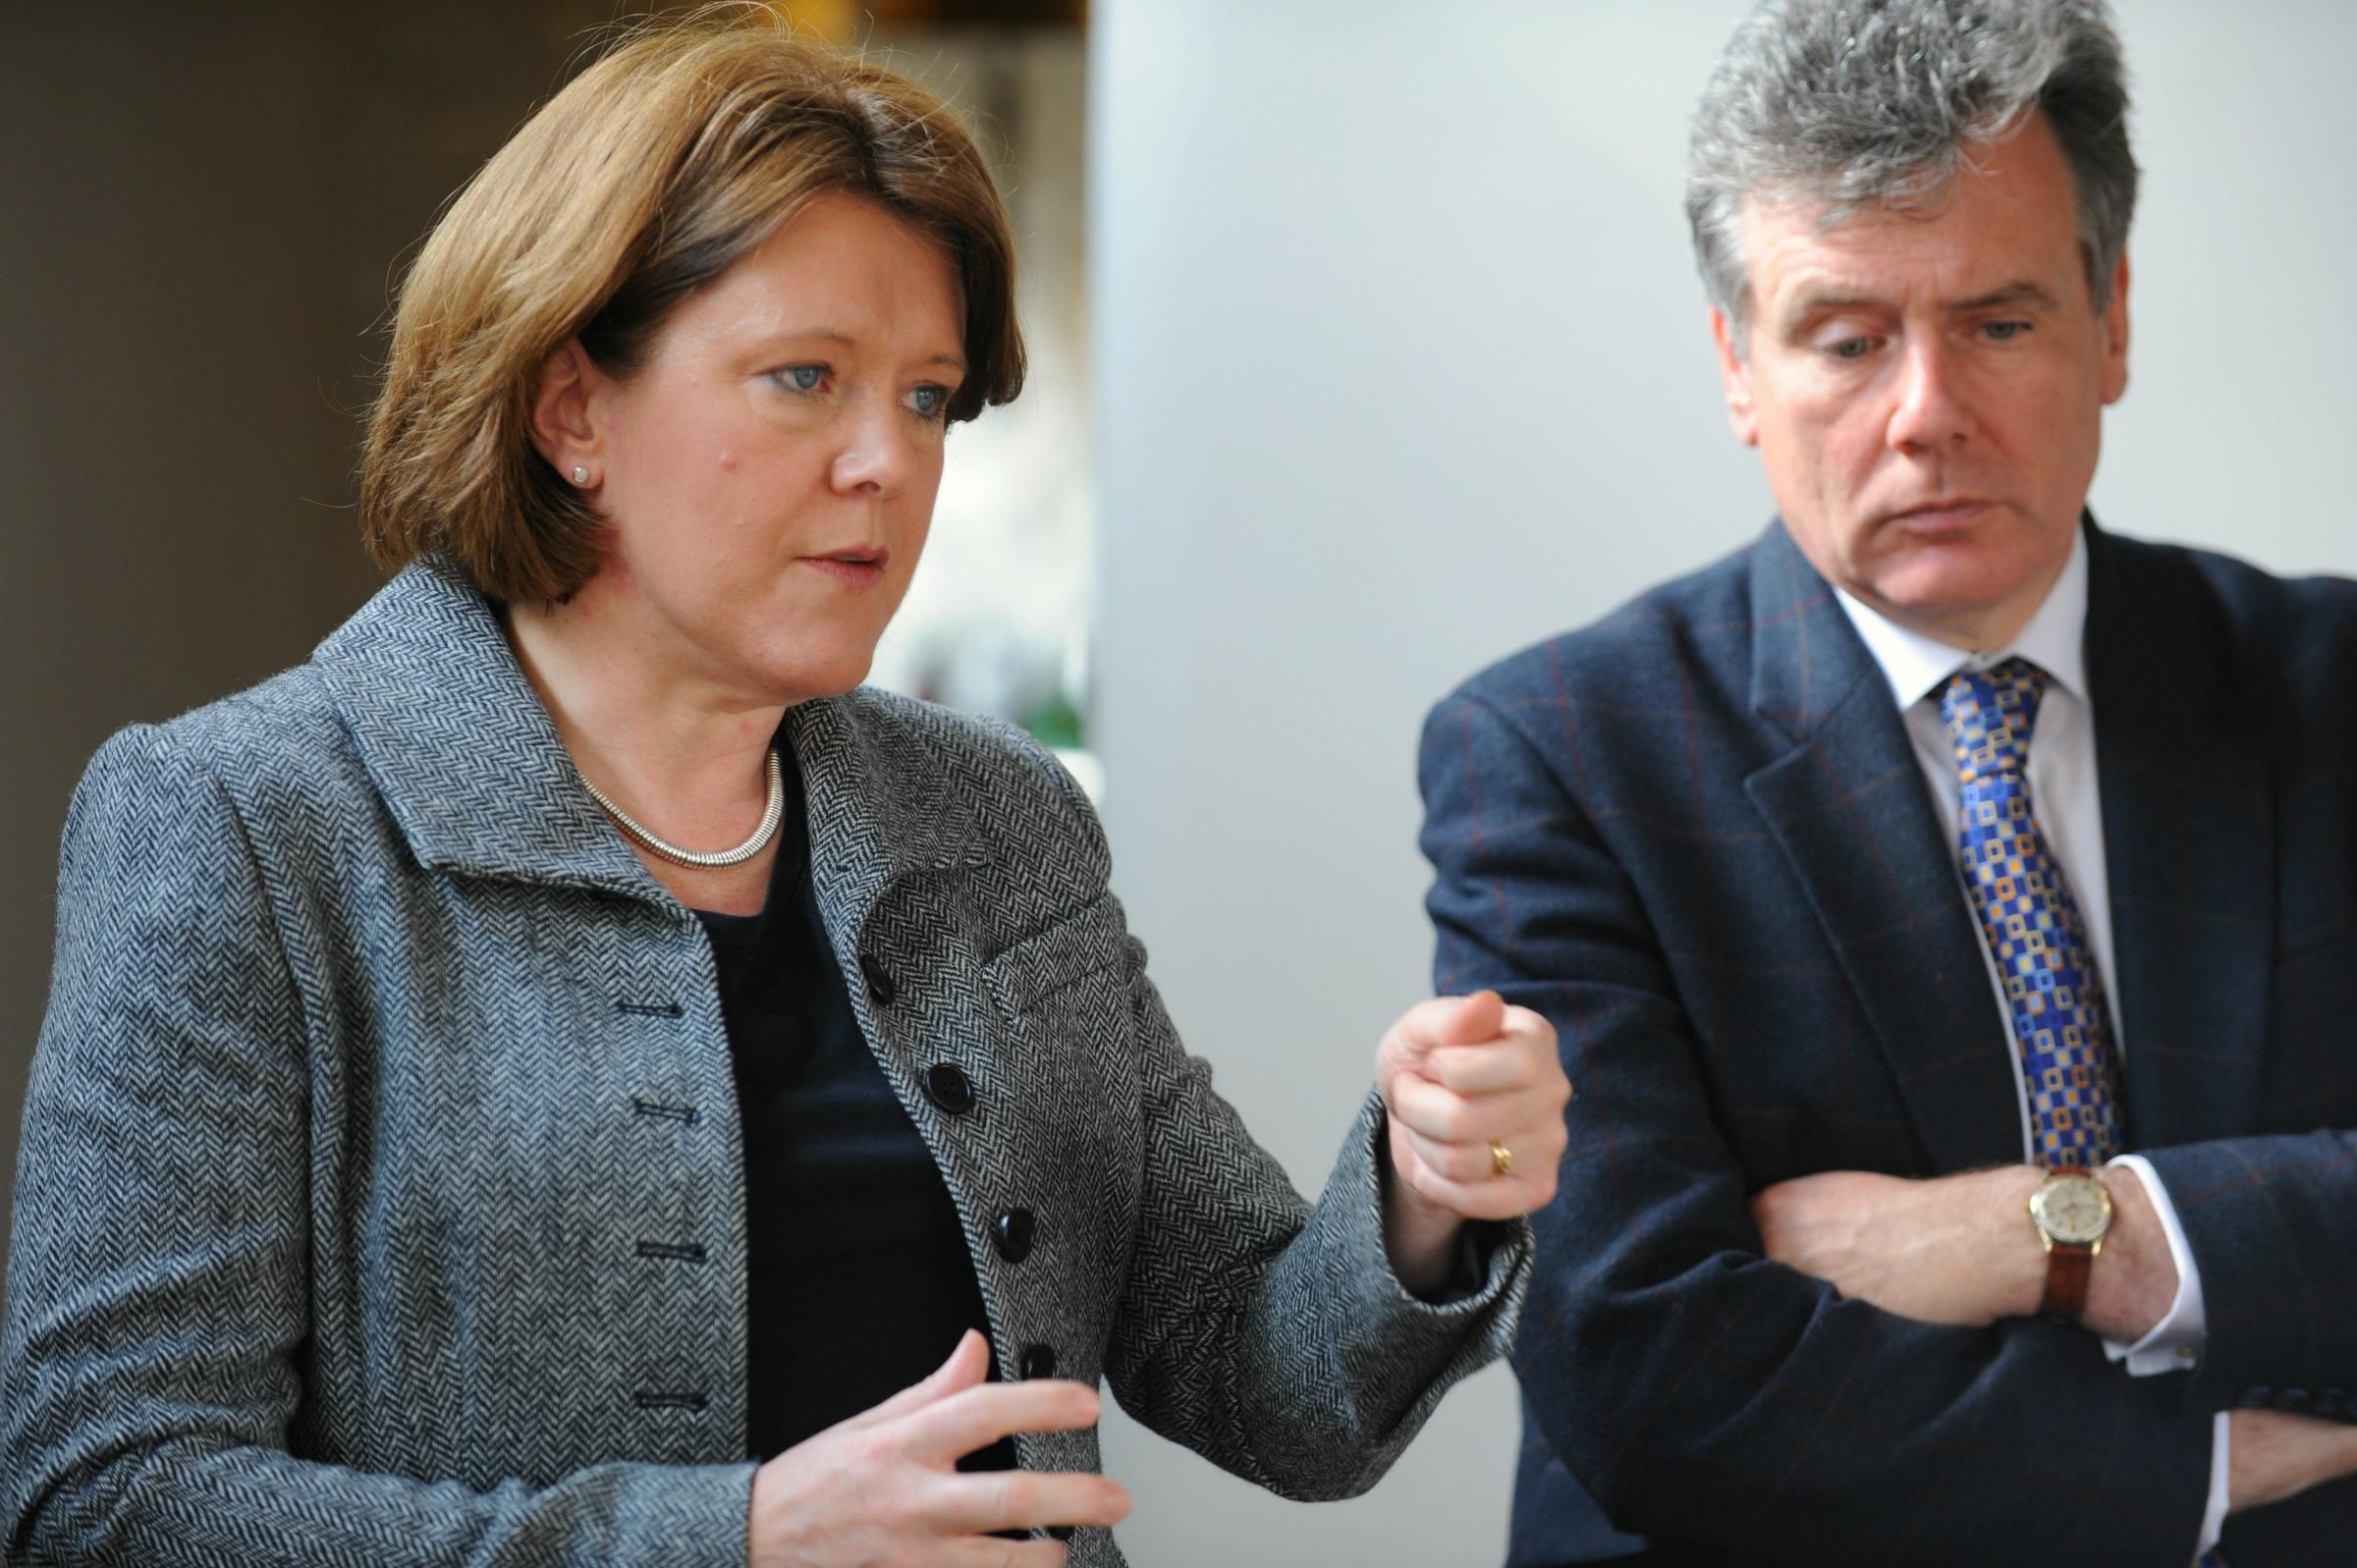 MP Neil Carmichael says it's 'time to move on' following Maria Miller controversy